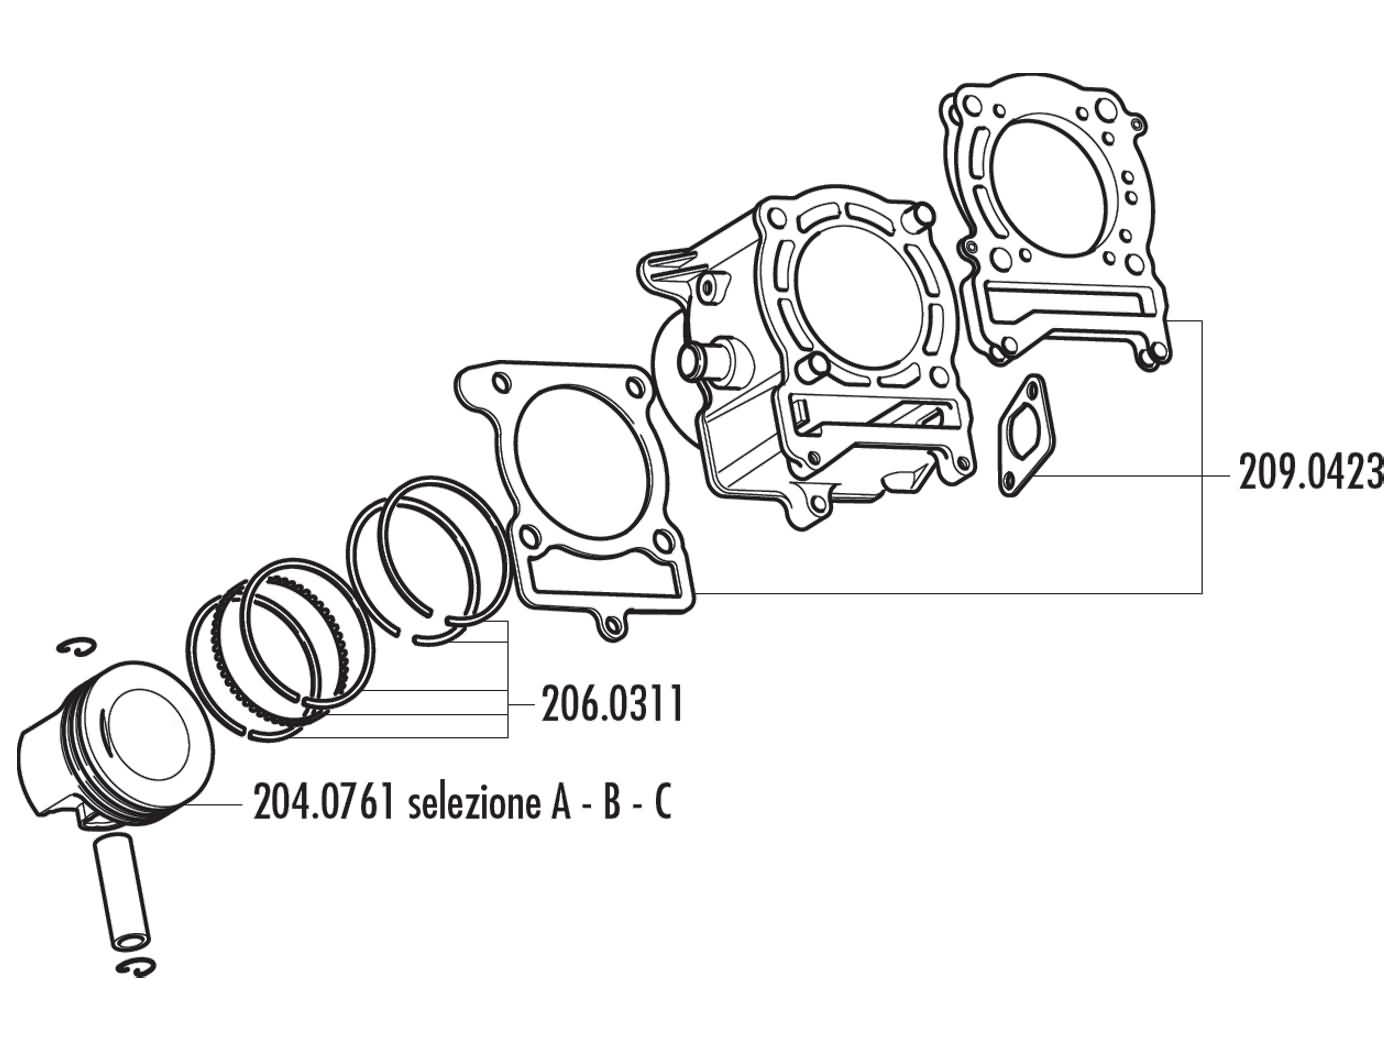 Piston Kit Polini 170cc 63mm C For Yamaha Majesty Benelli Velvet Cf Moto E Charm 150cc Wiring Diagram Mbk Cityliner 125 4t